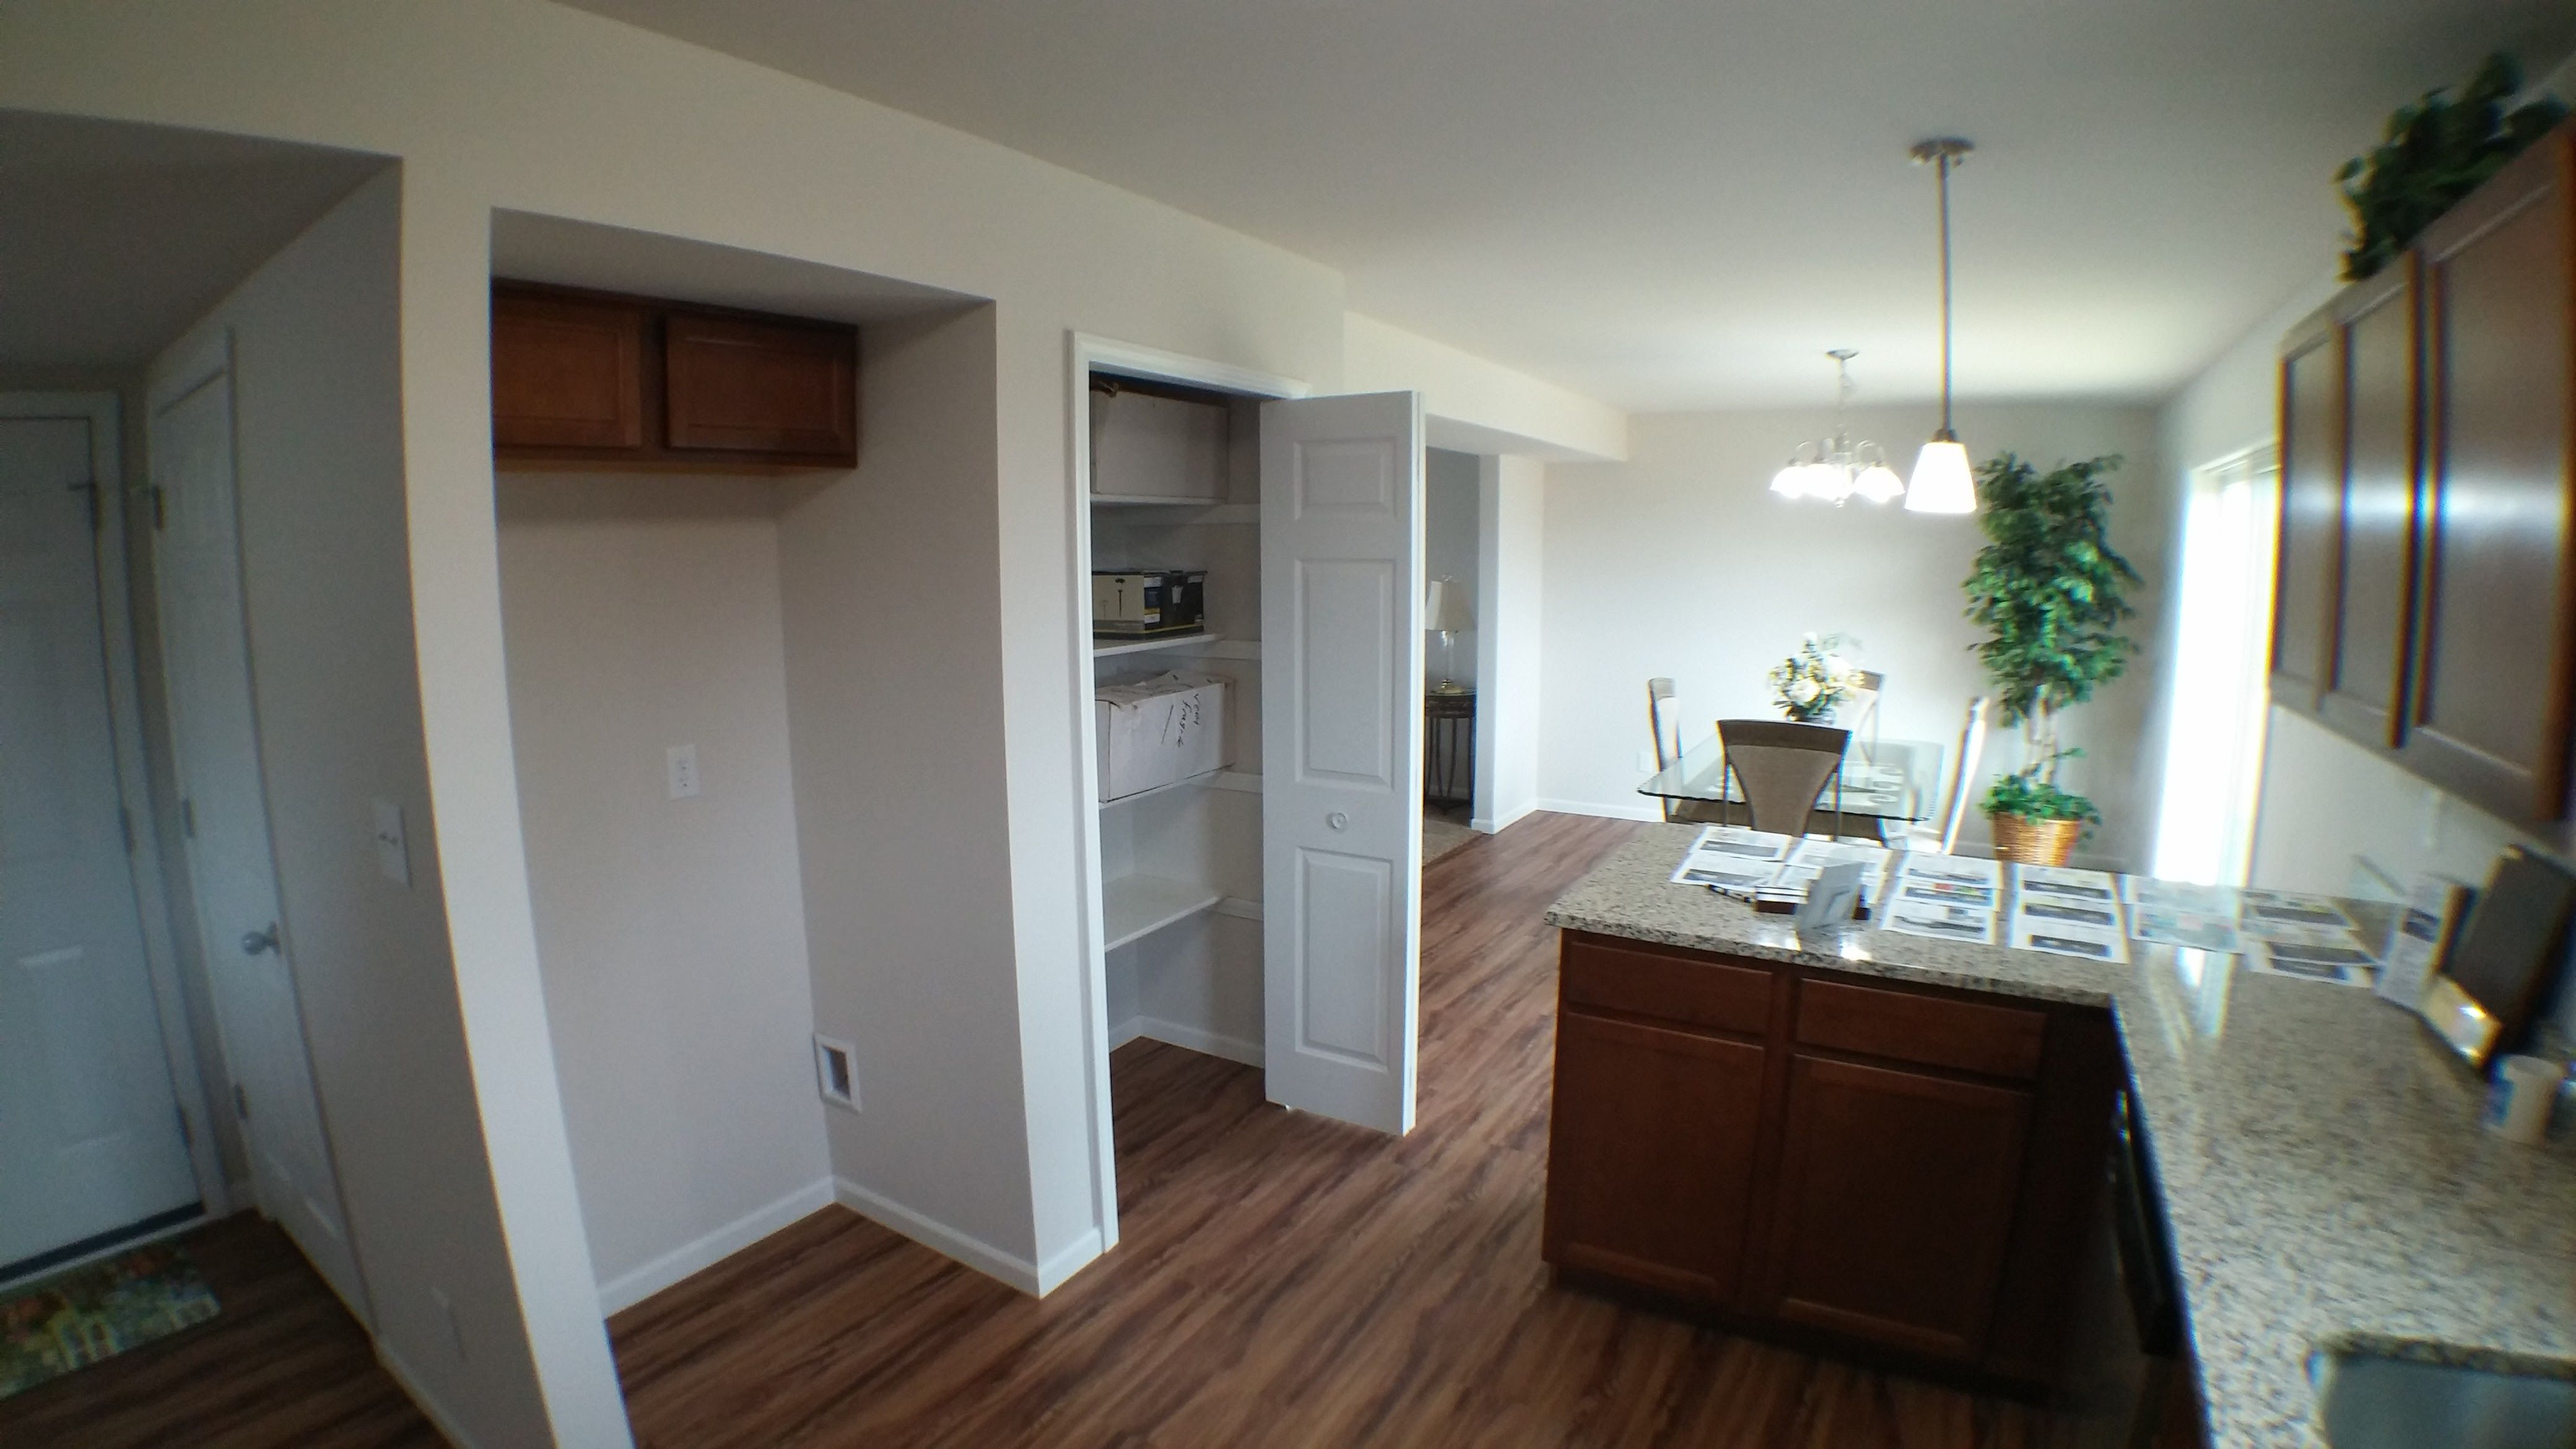 Kitchen featured in the Irvington By Accent Homes Inc. in Gary, IN